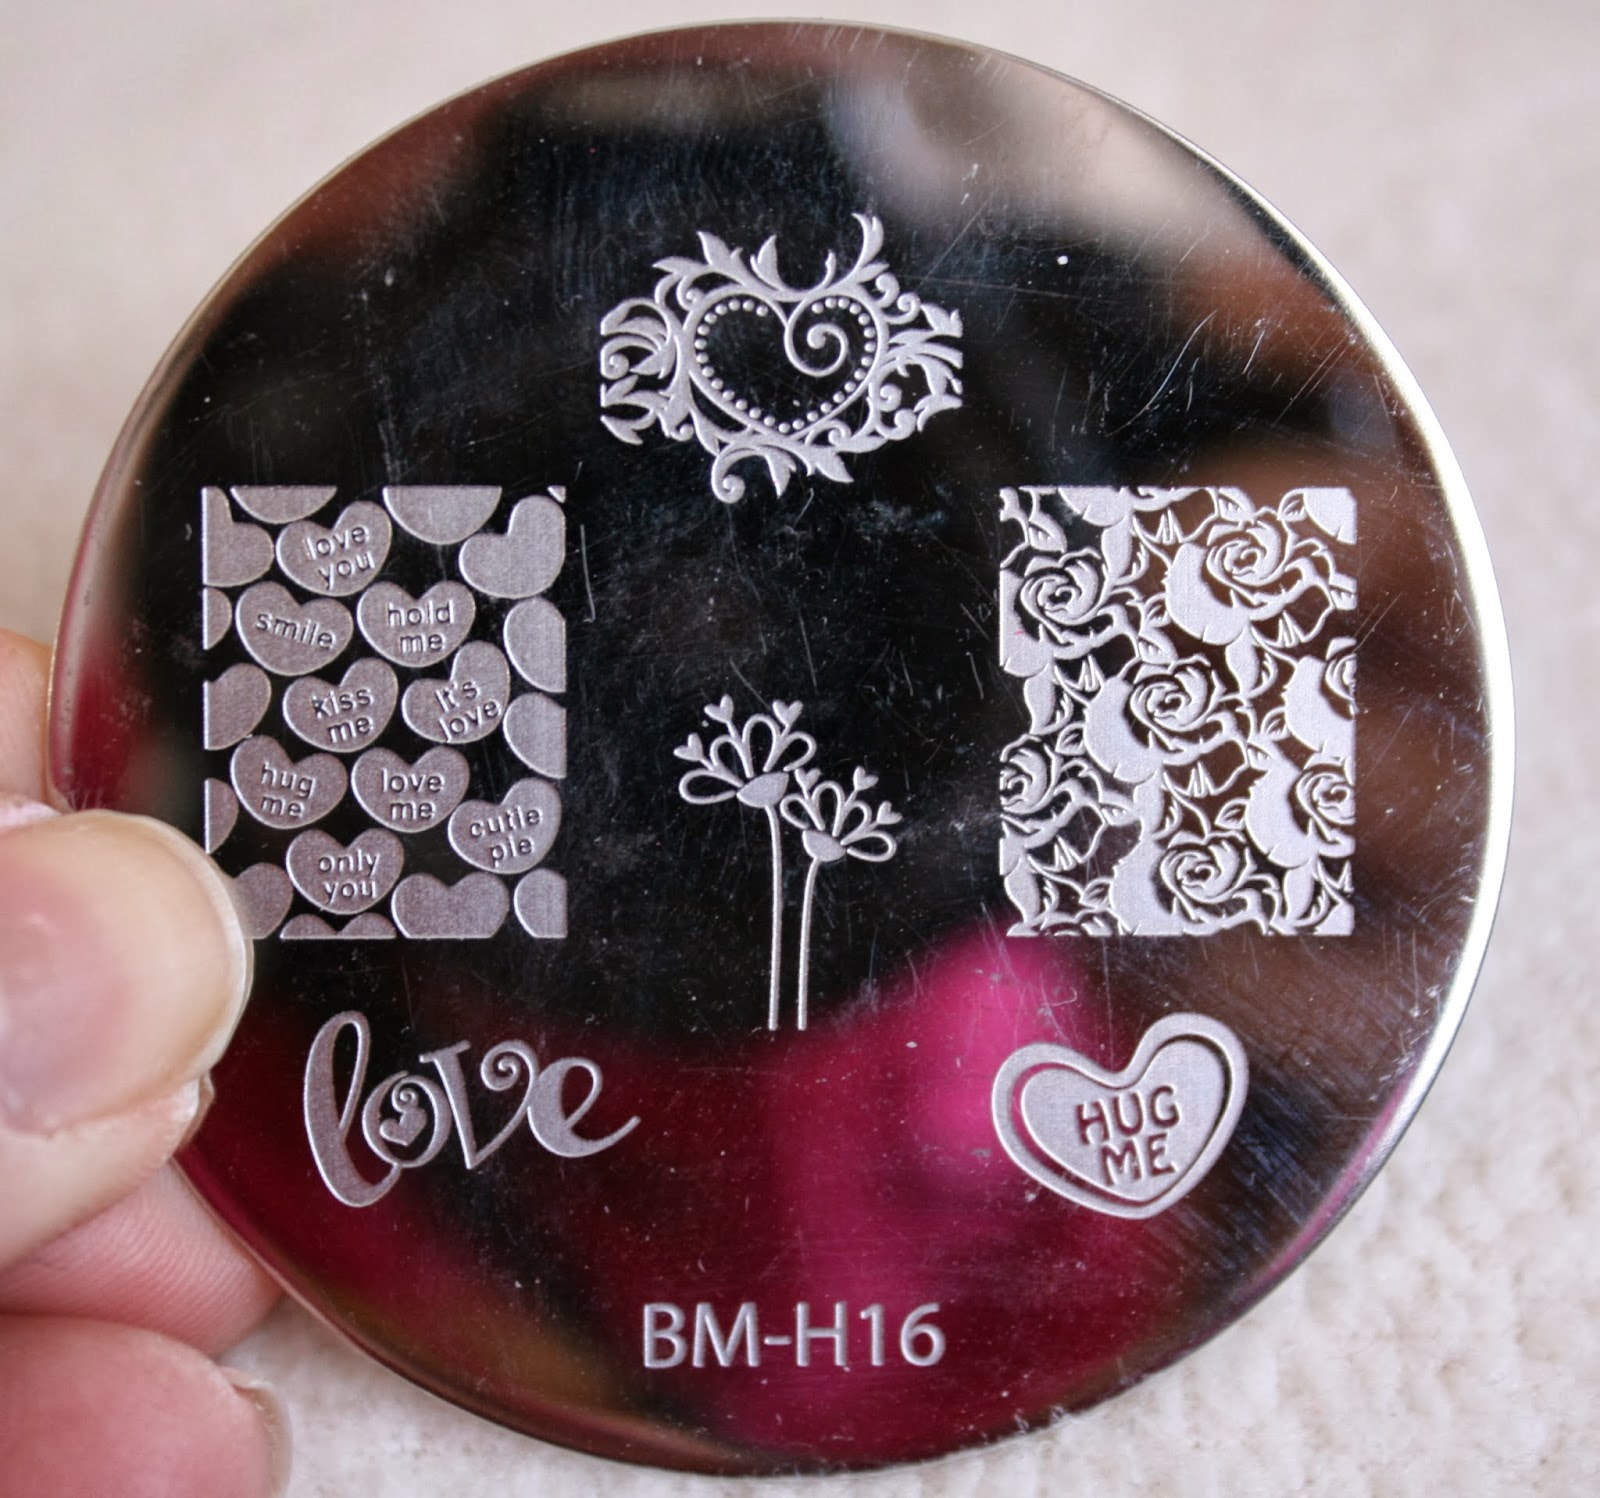 bundle monster nail stamping plates set collection holiday 2013 nails art stamp konad bm-h16